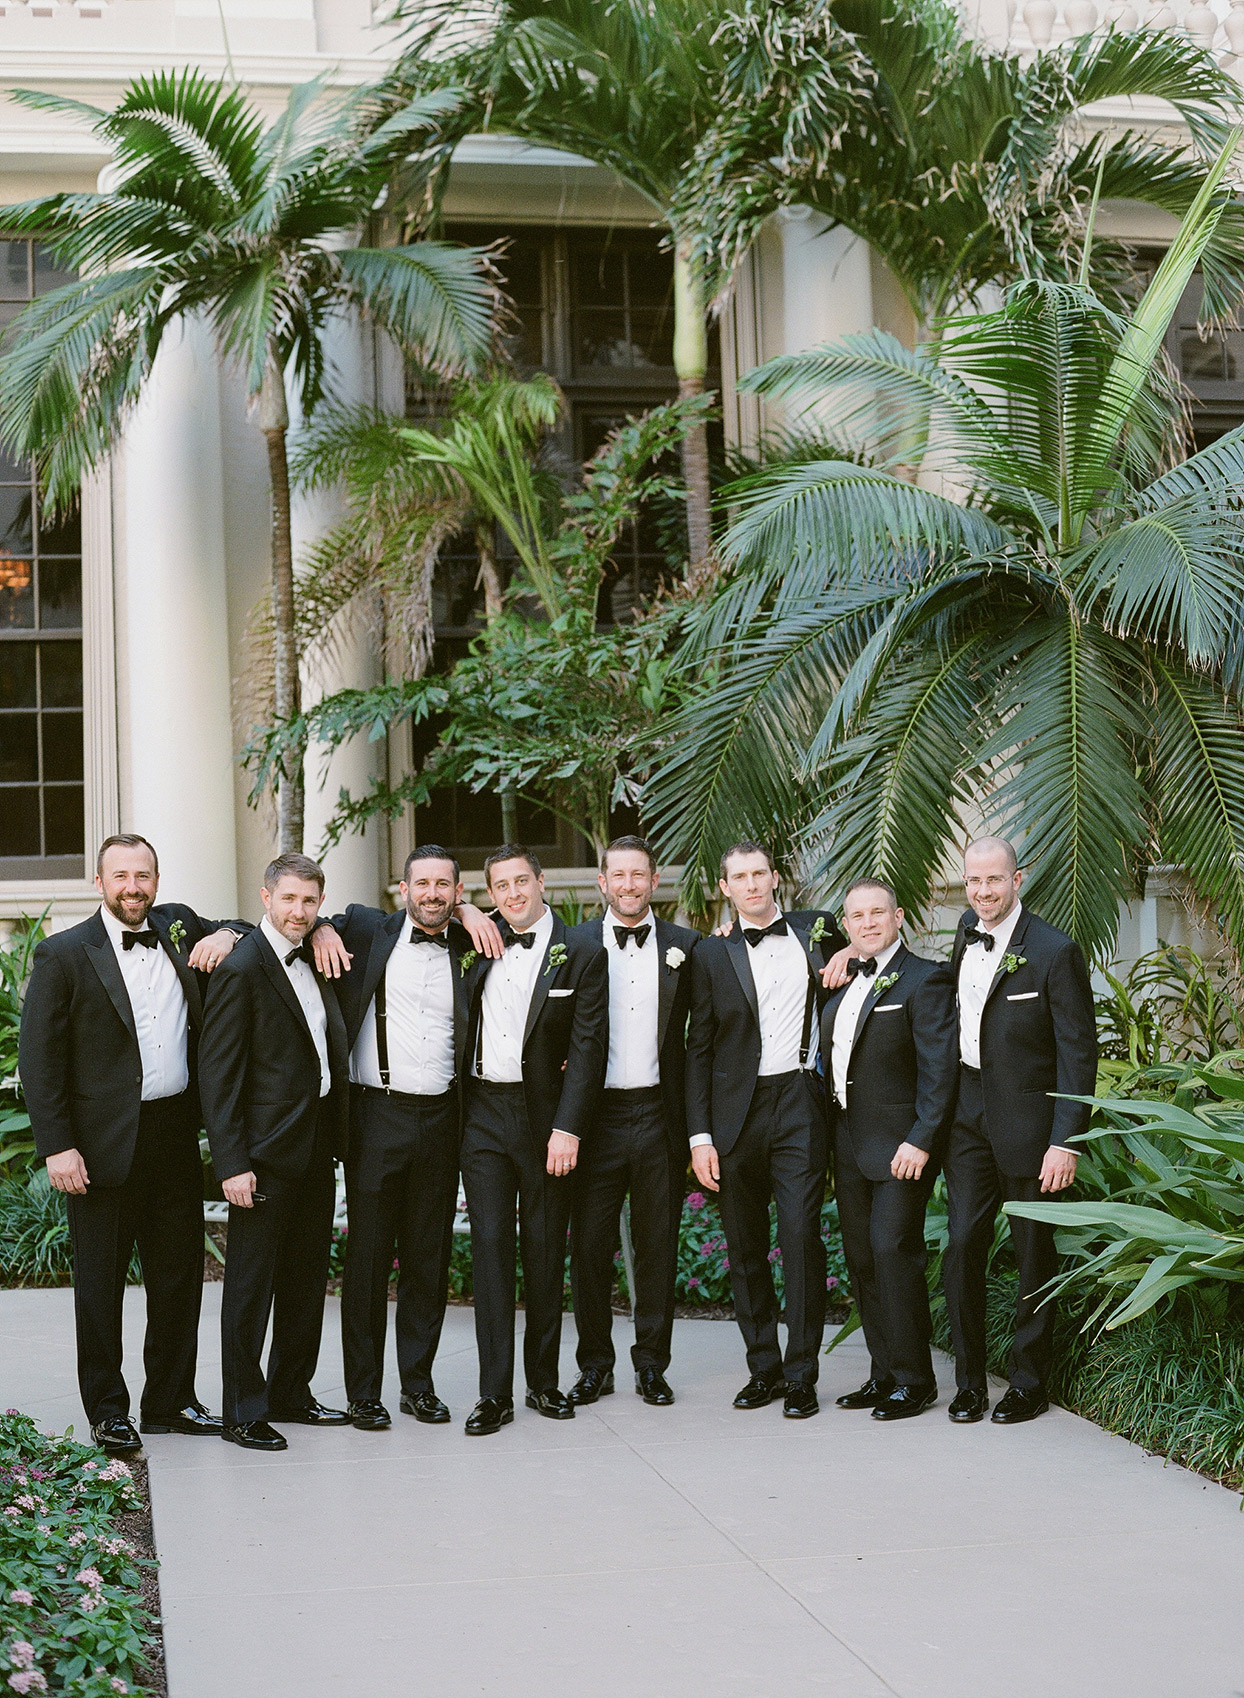 brittany brian wedding groomsmen on pathway surrounded by tropical plants